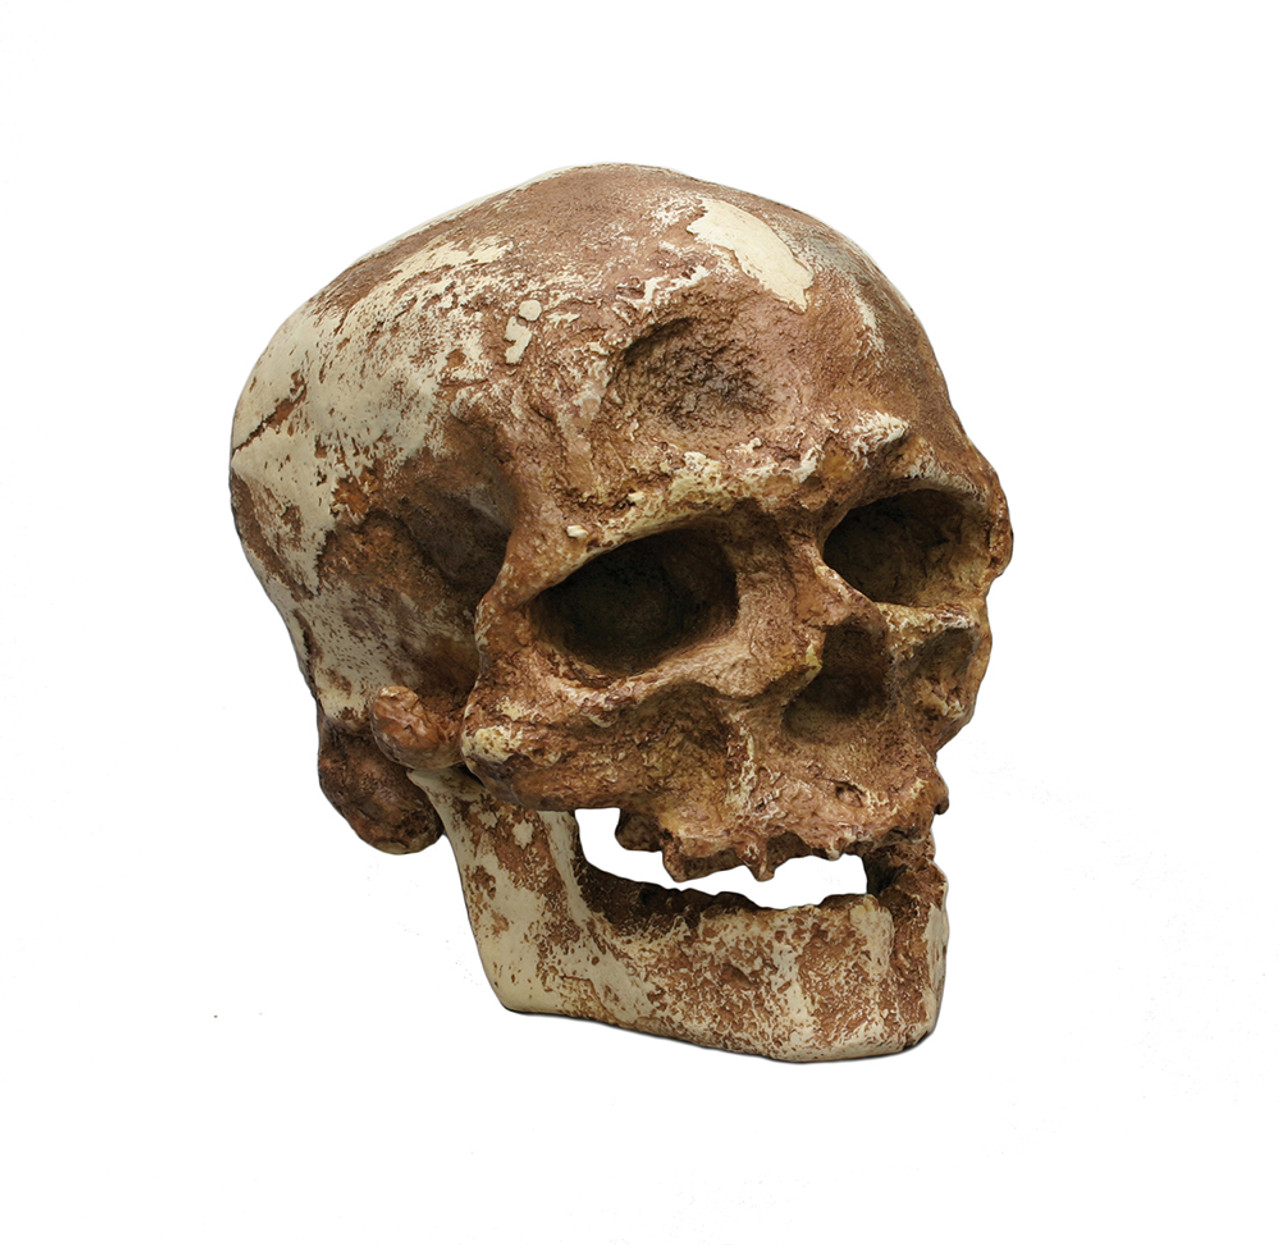 BH017-C - Cro-Magnon 1, with jaw